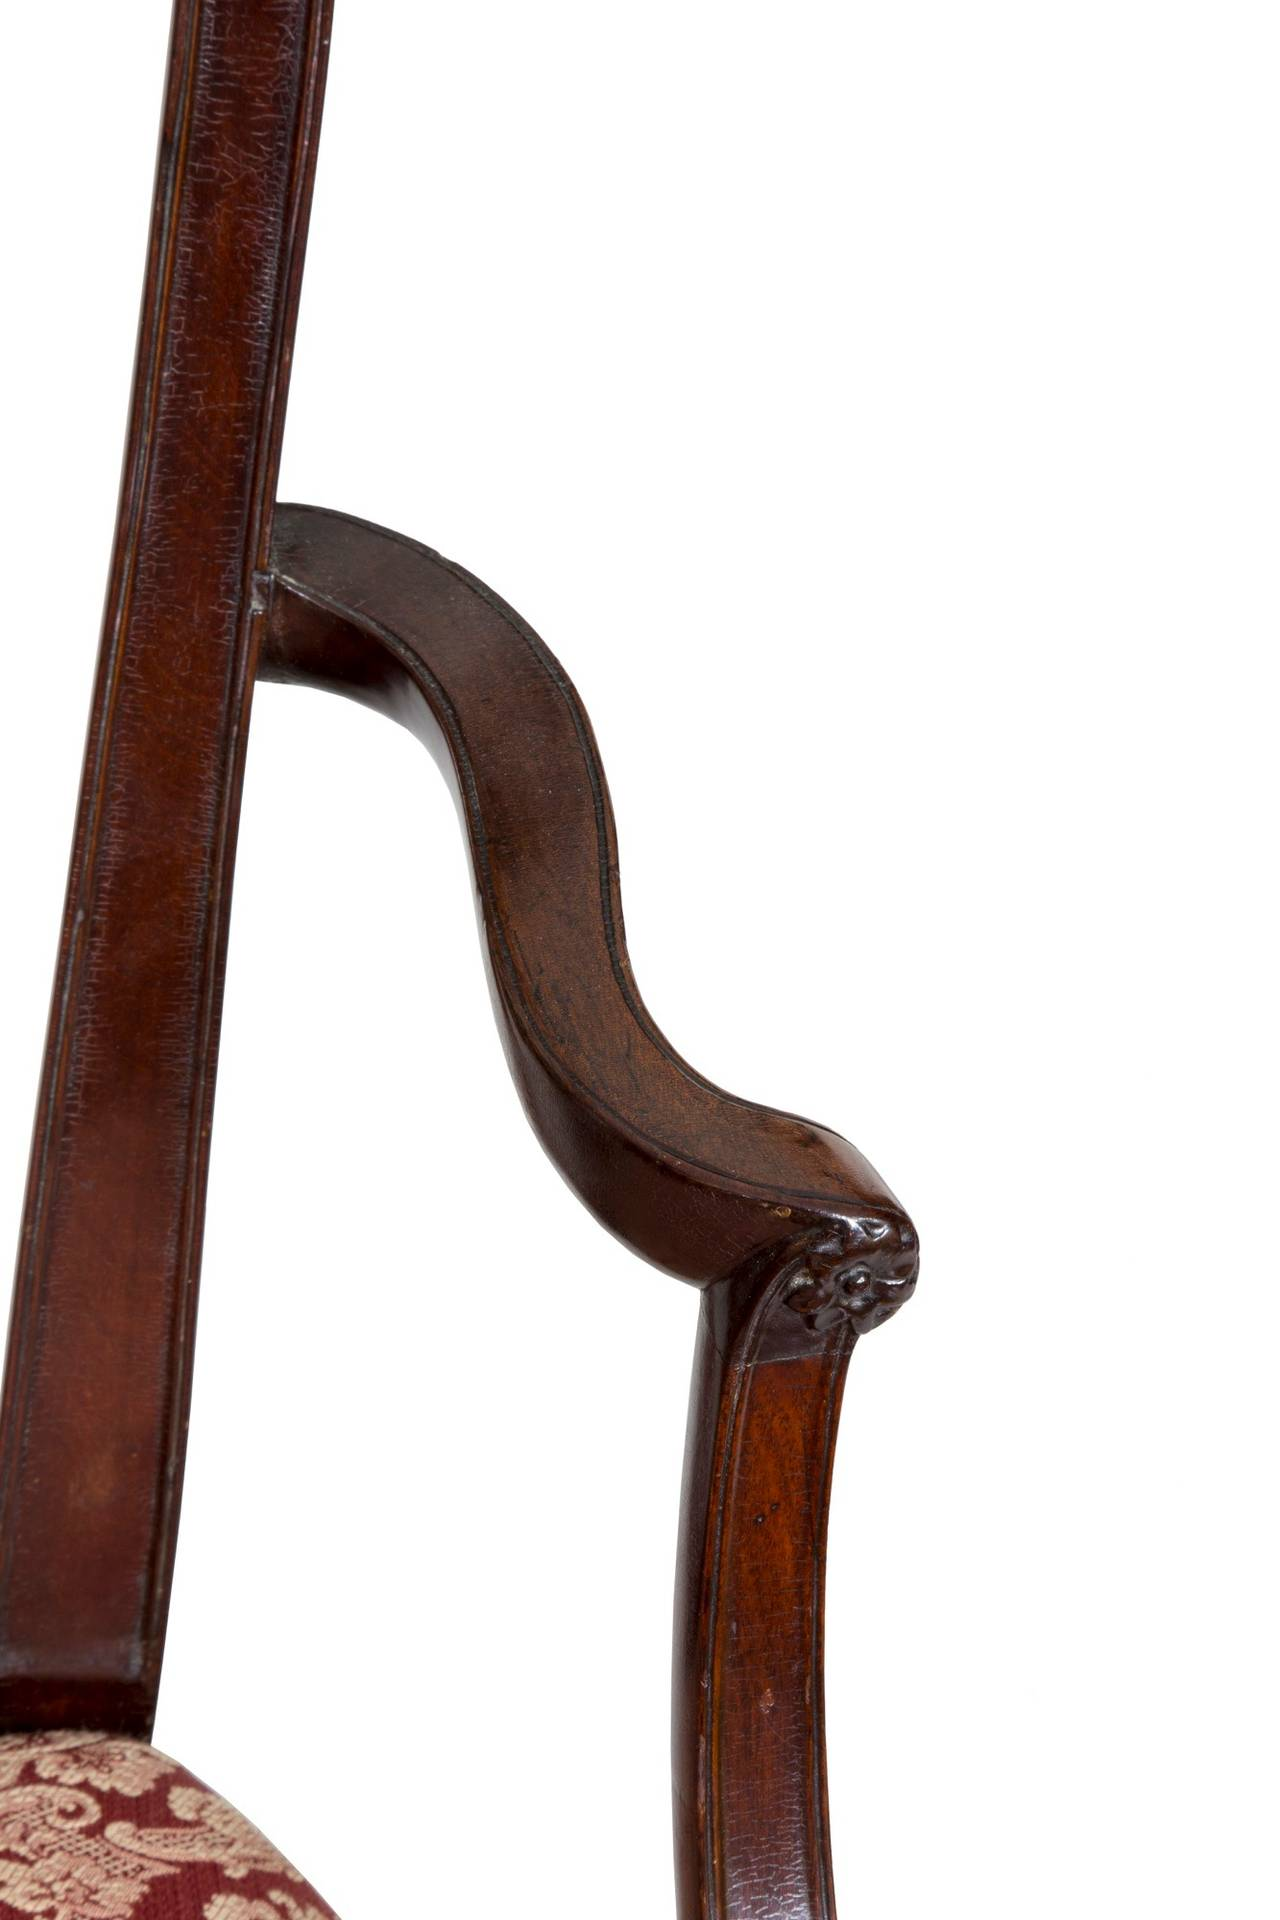 Hepplewhite Shield Back Armchair, Mahogany, New York, circa 1790 For Sale 1